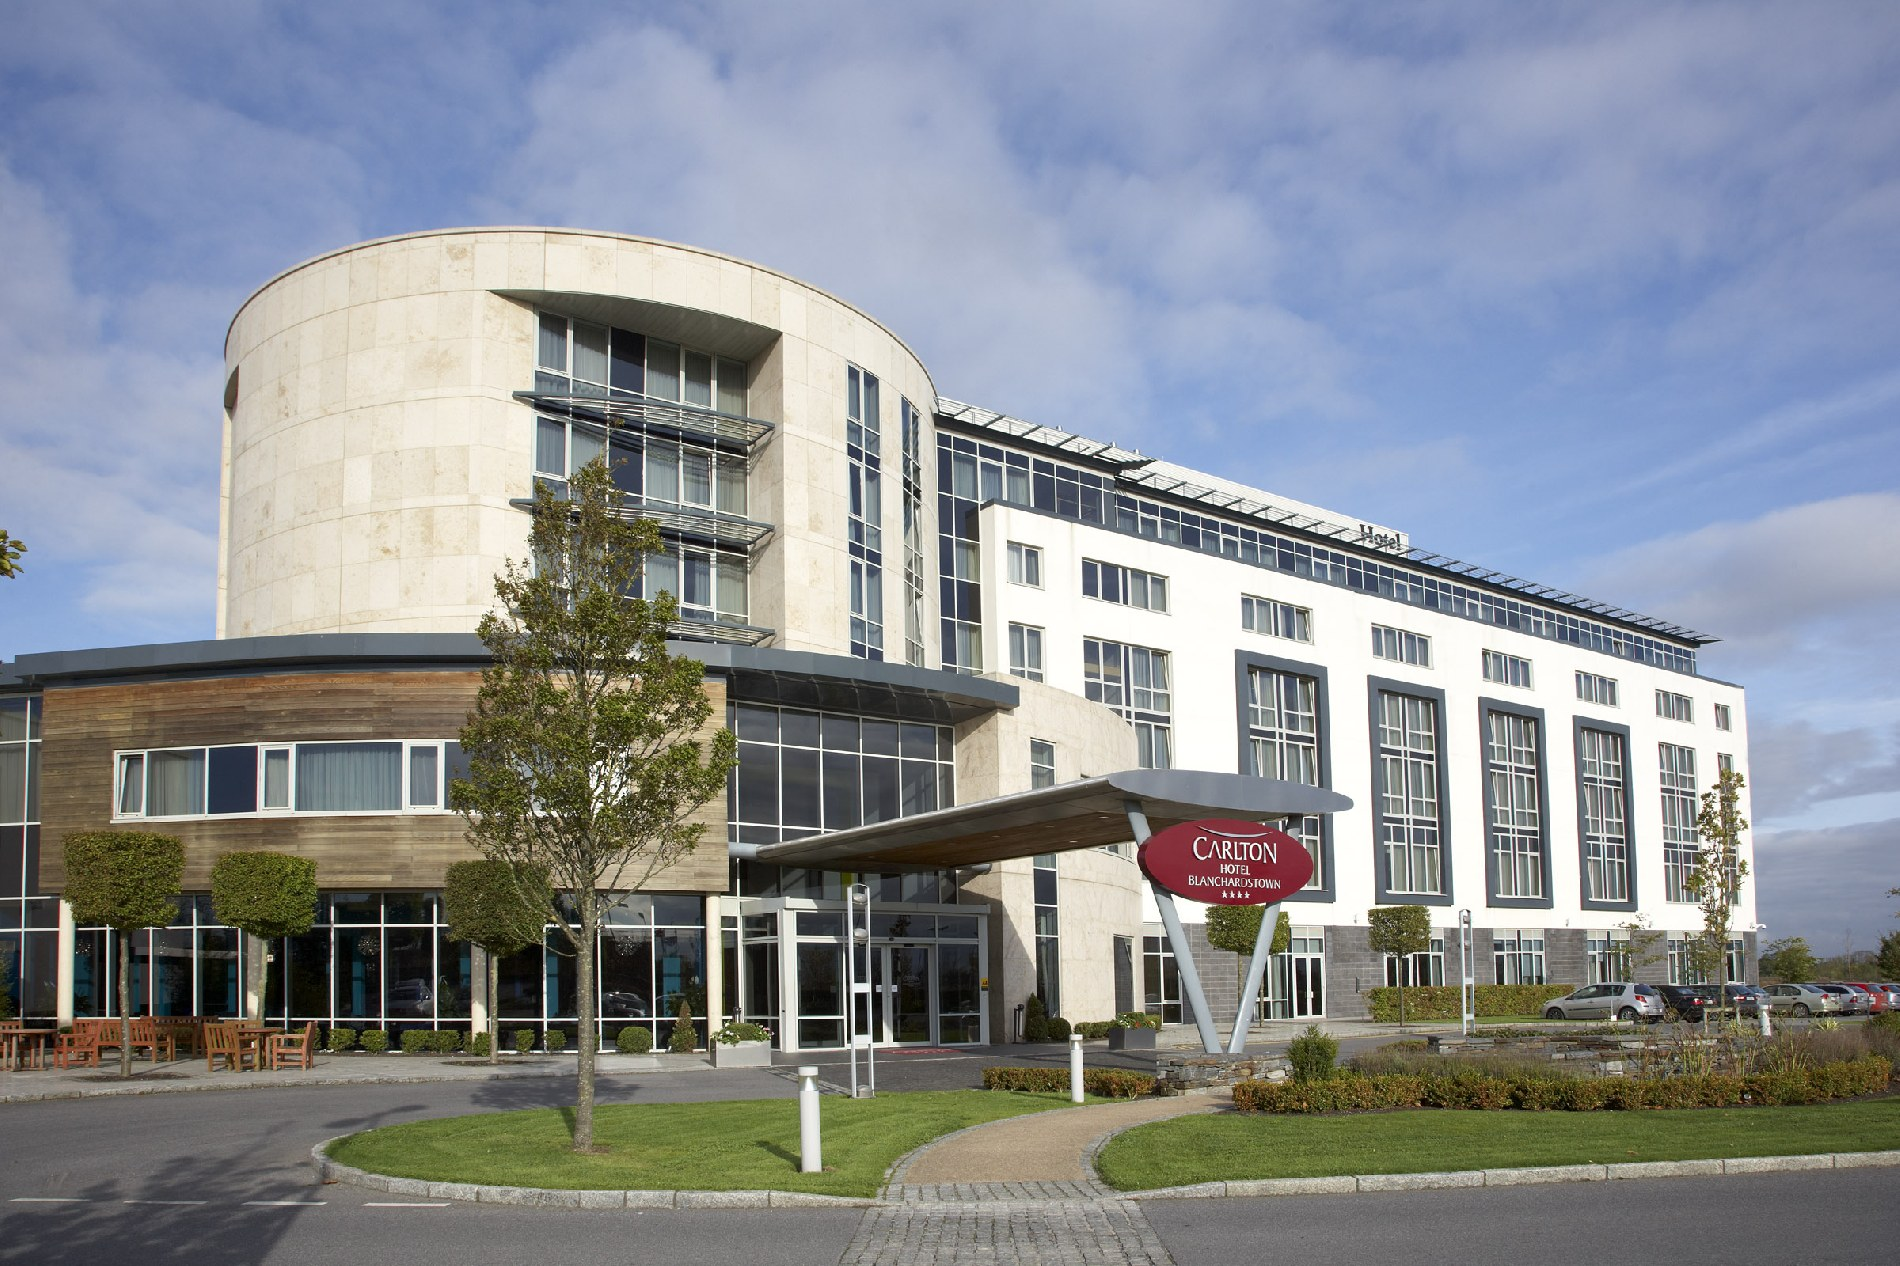 Contact Us Carlton Hotel Blanchardstown